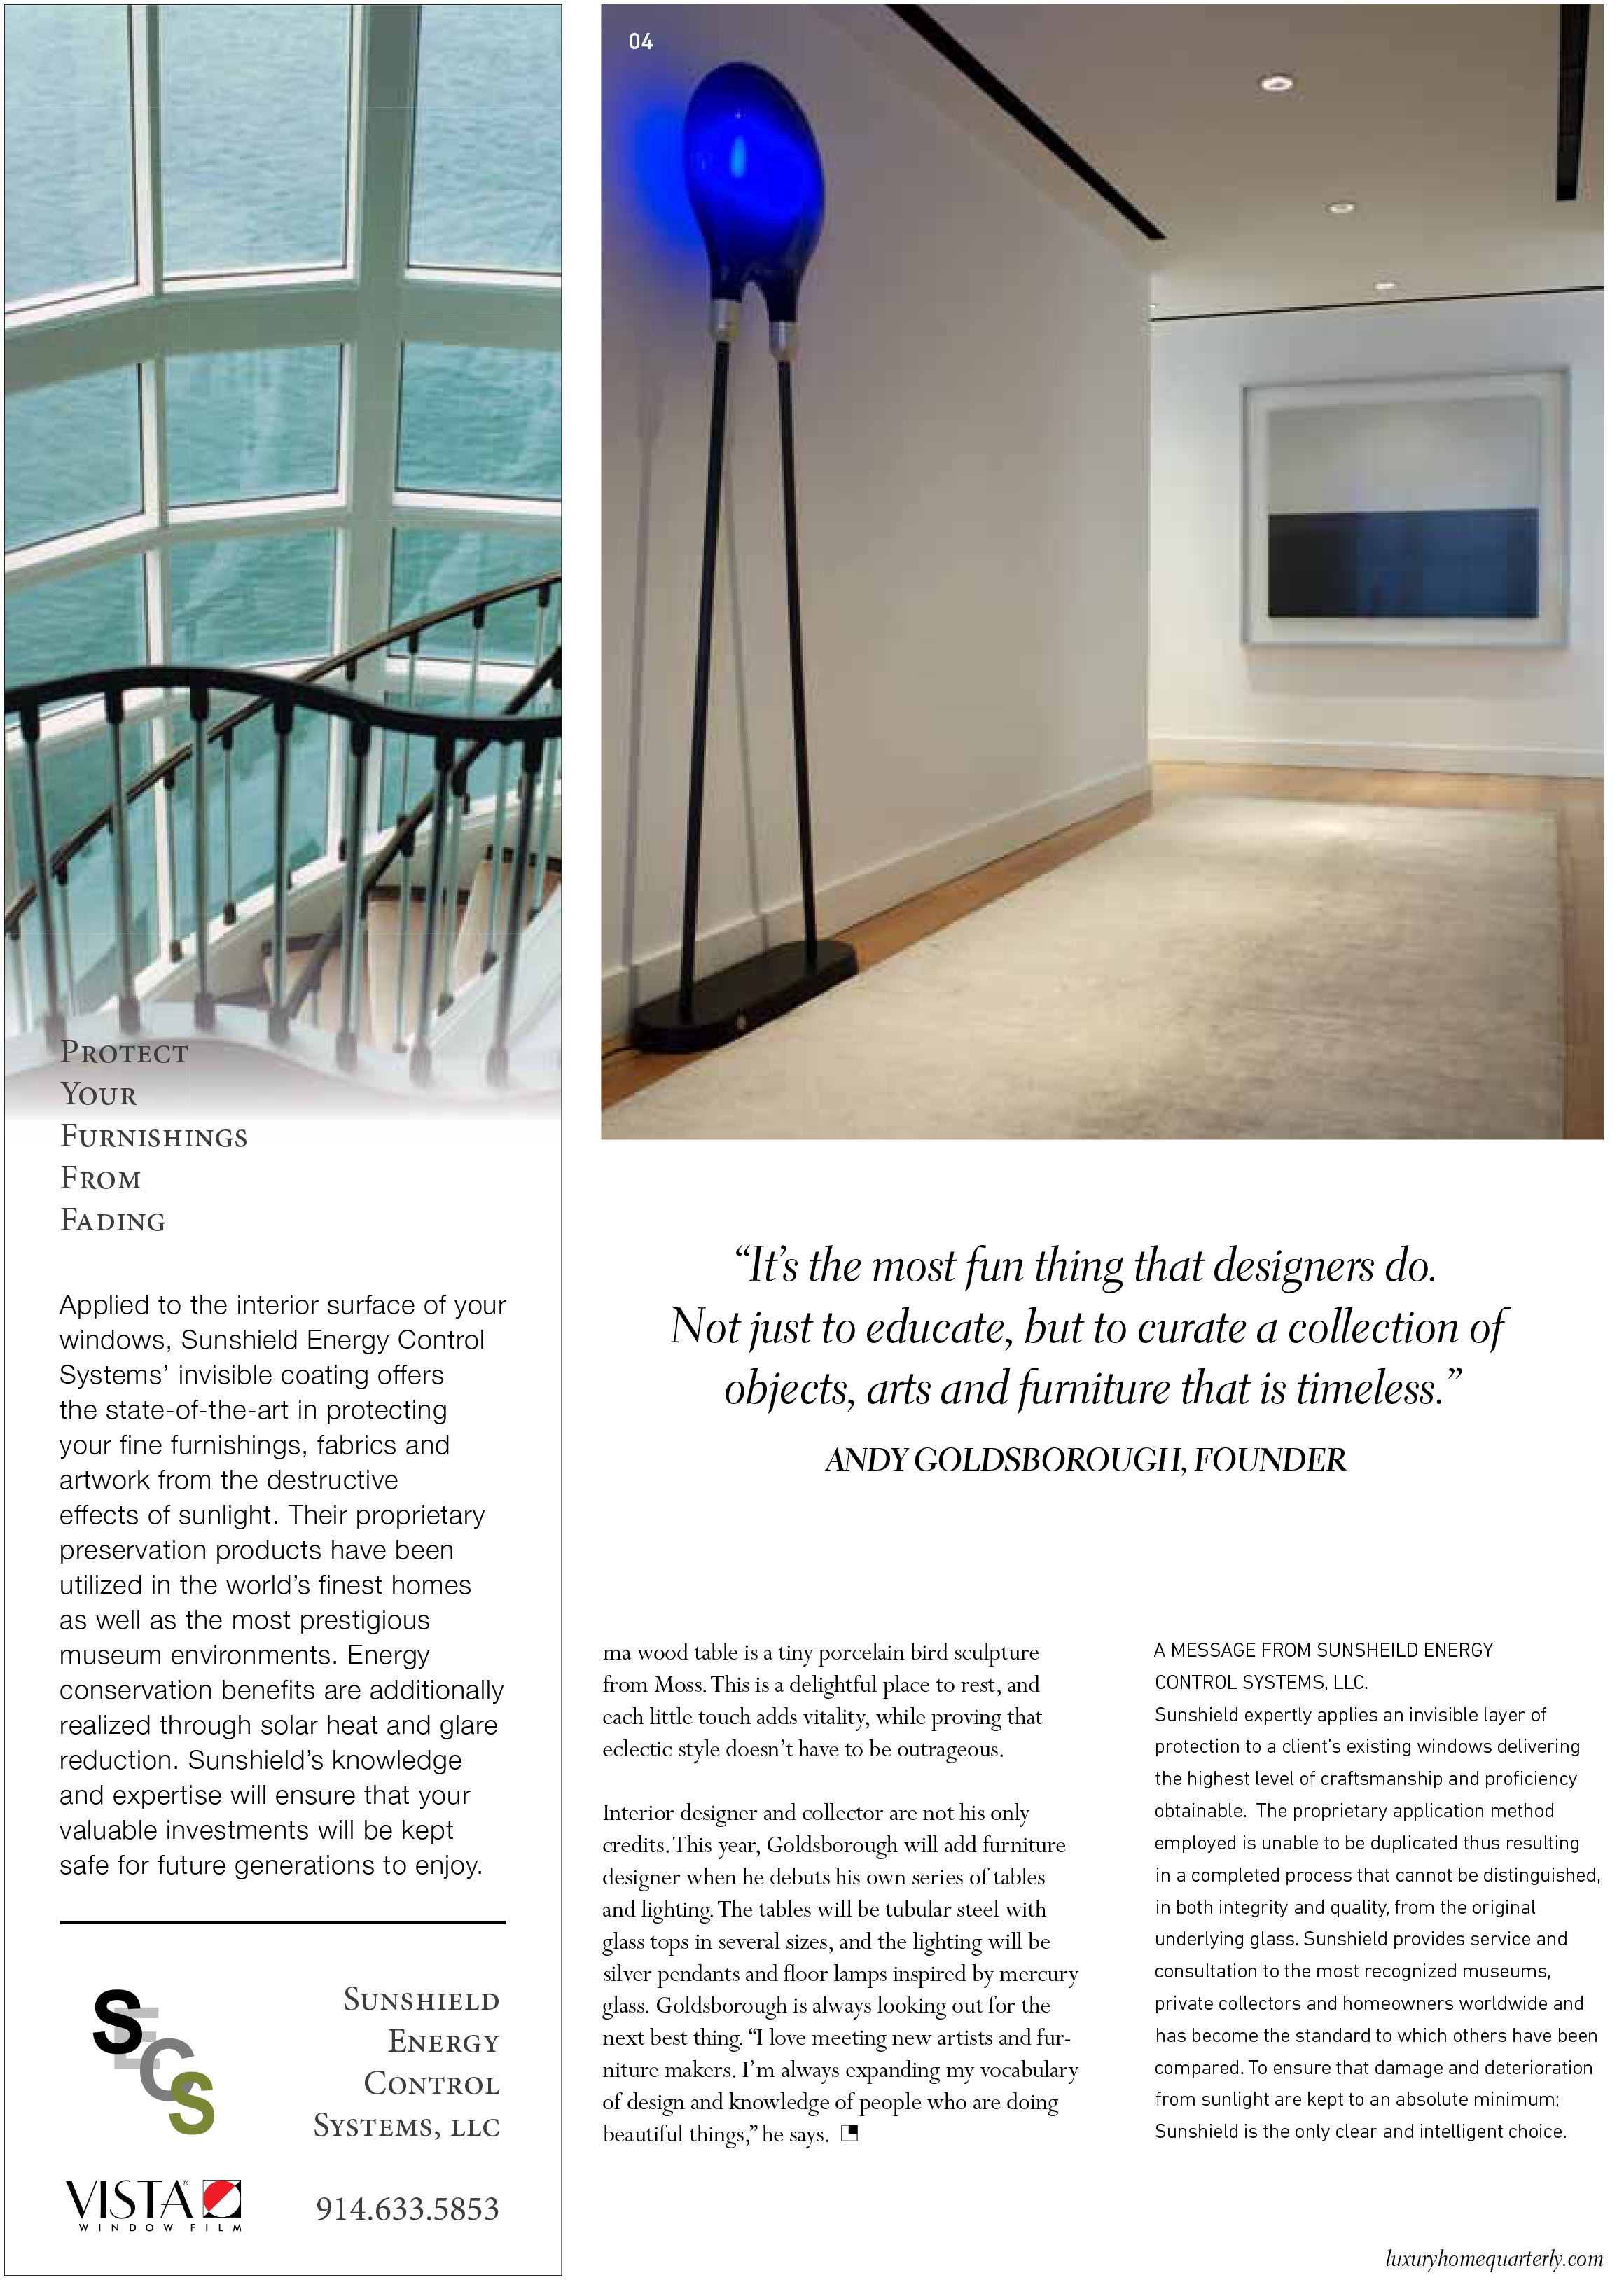 Luxury Home Quarterly.pdf-4.jpg